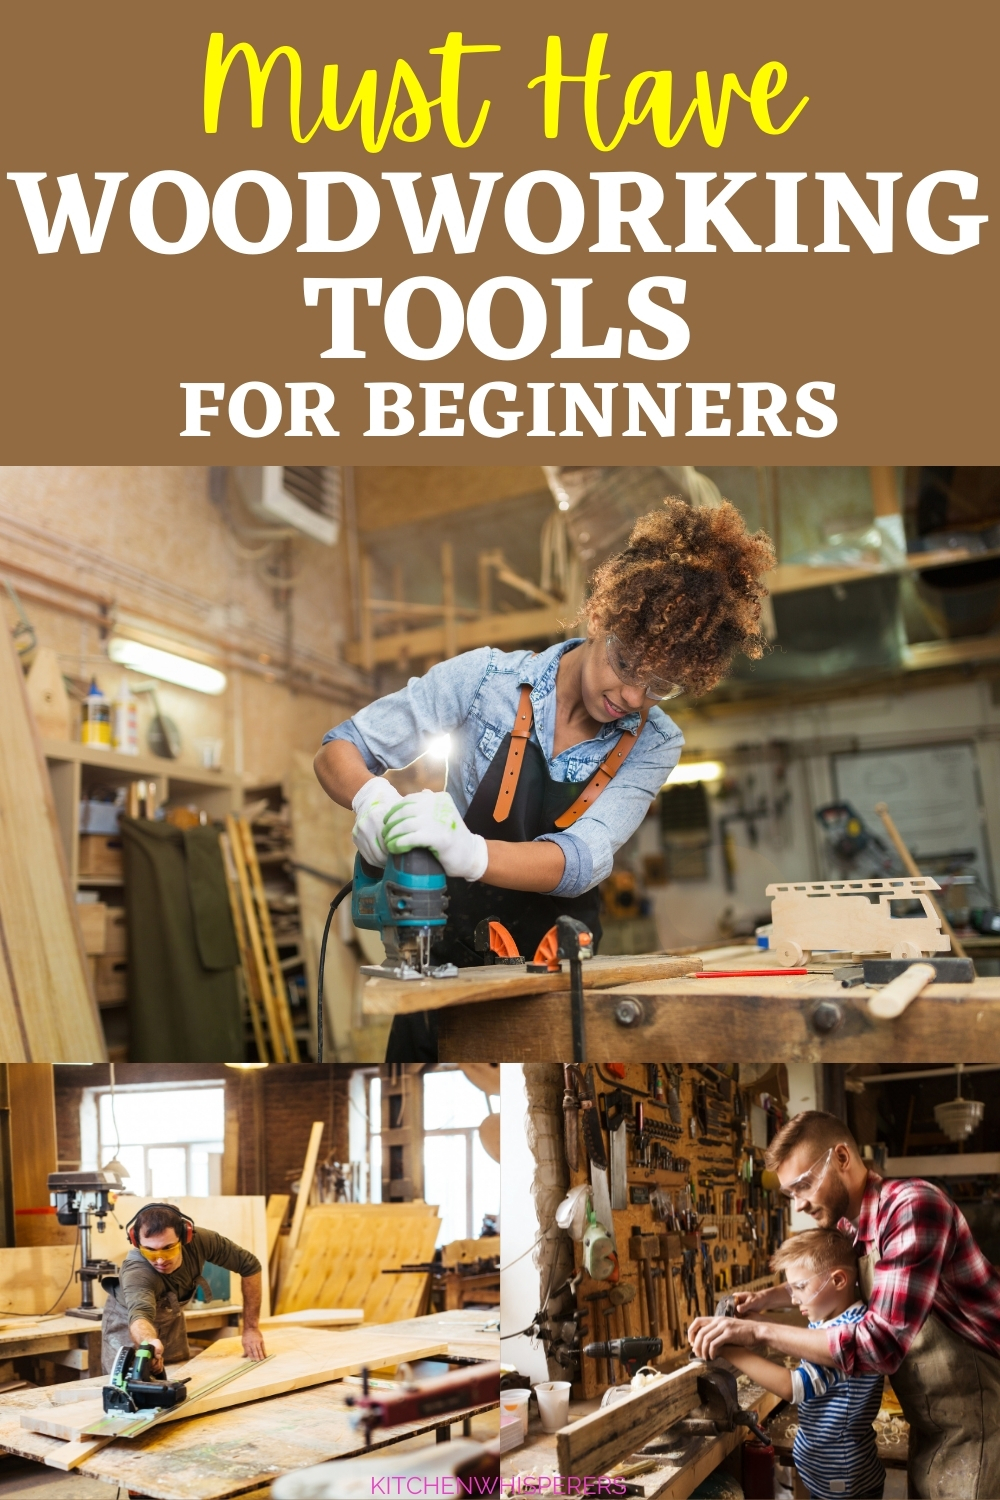 Basic Woodworking Tools For Beginners (1)